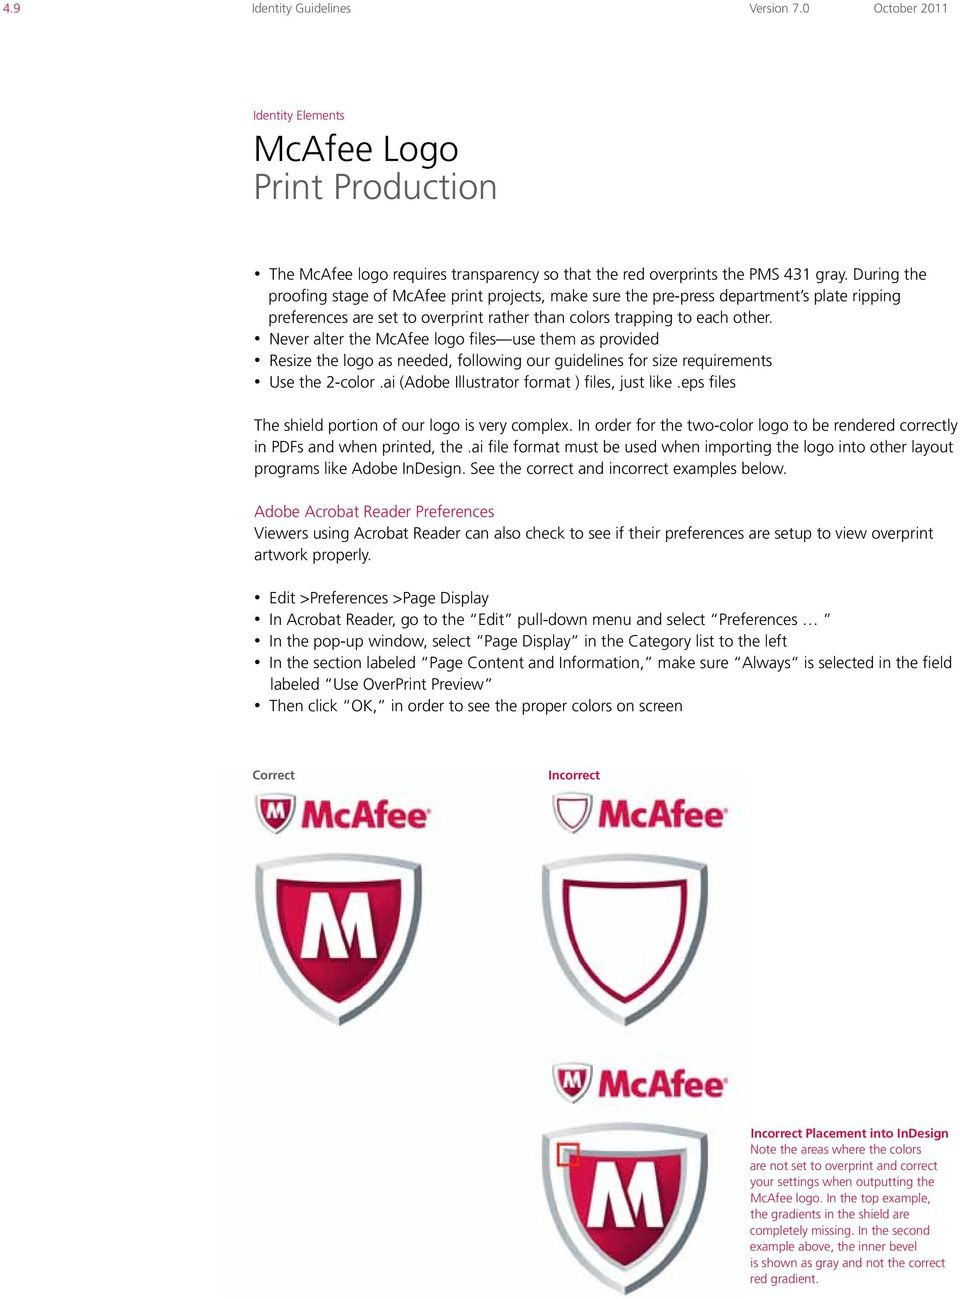 Never alter the McAfee logo files use them as provided Resize the logo as needed, following our guidelines for size requirements Use the 2-color.ai (Adobe Illustrator format ) files, just like.